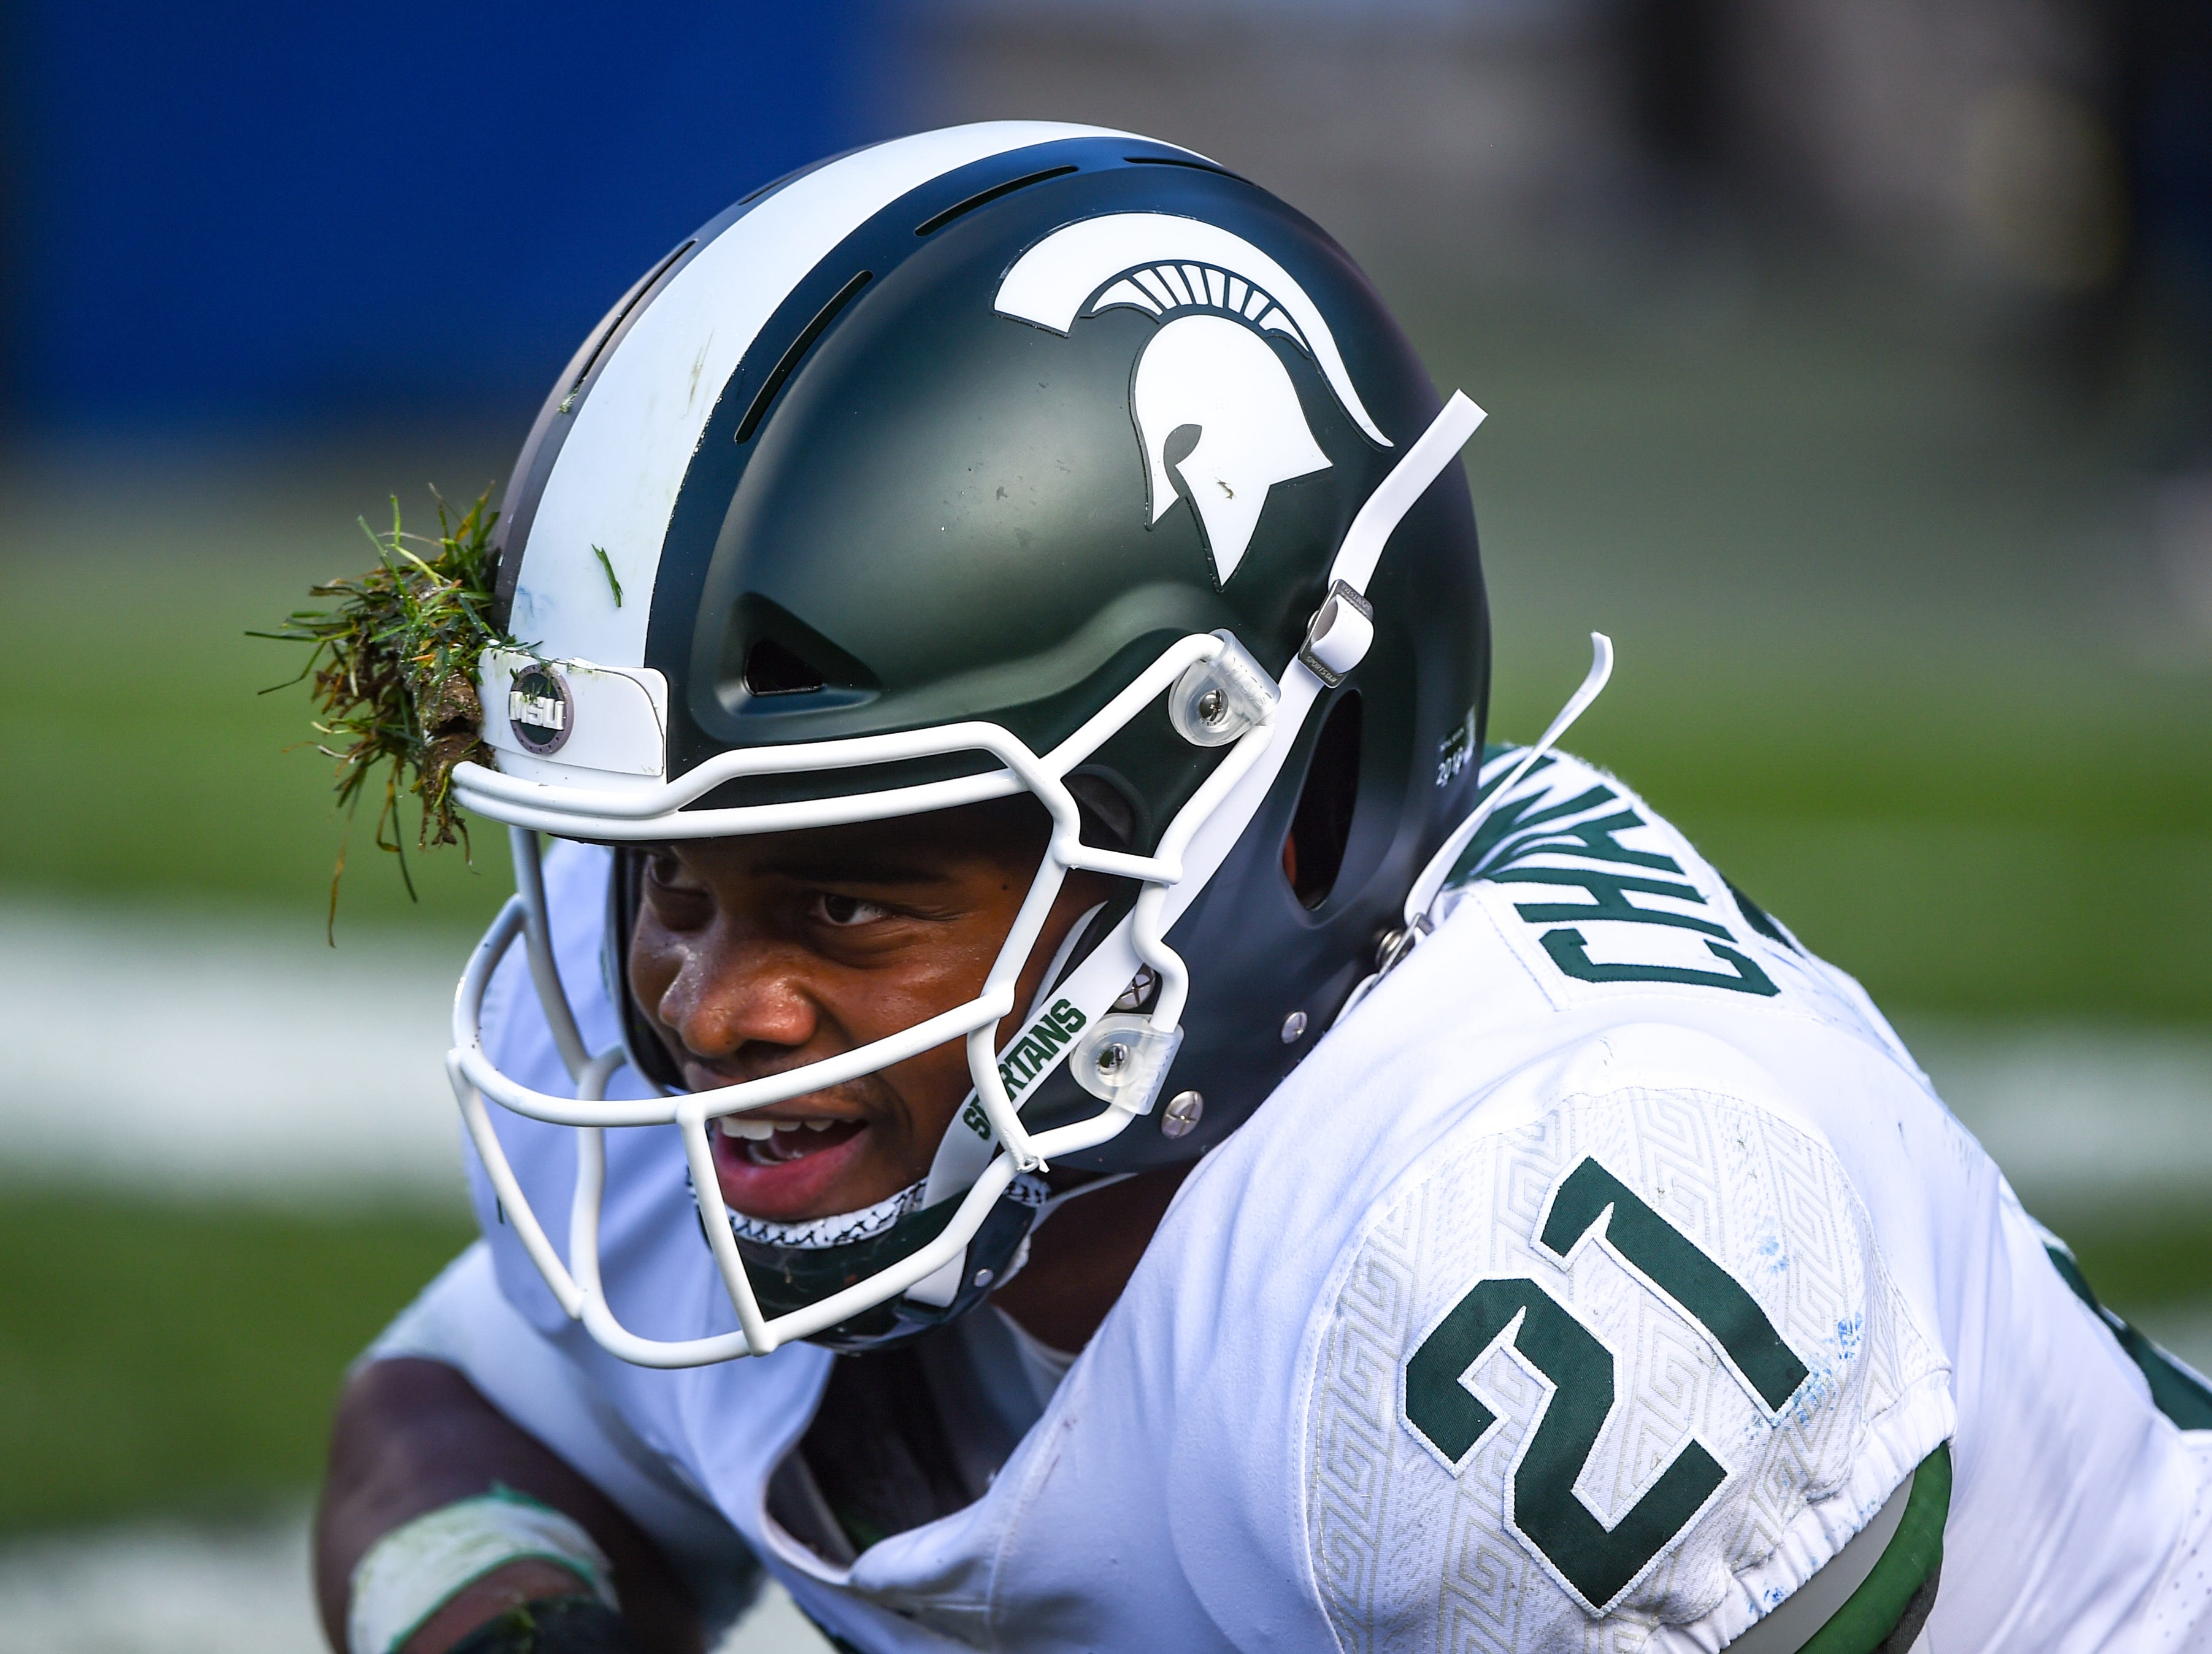 Cam Chambers (21) of Michigan State looks to the refs during the Penn State Homecoming game, October 13, 2018. The Nittany Lions fell to the Spartans 17-21.